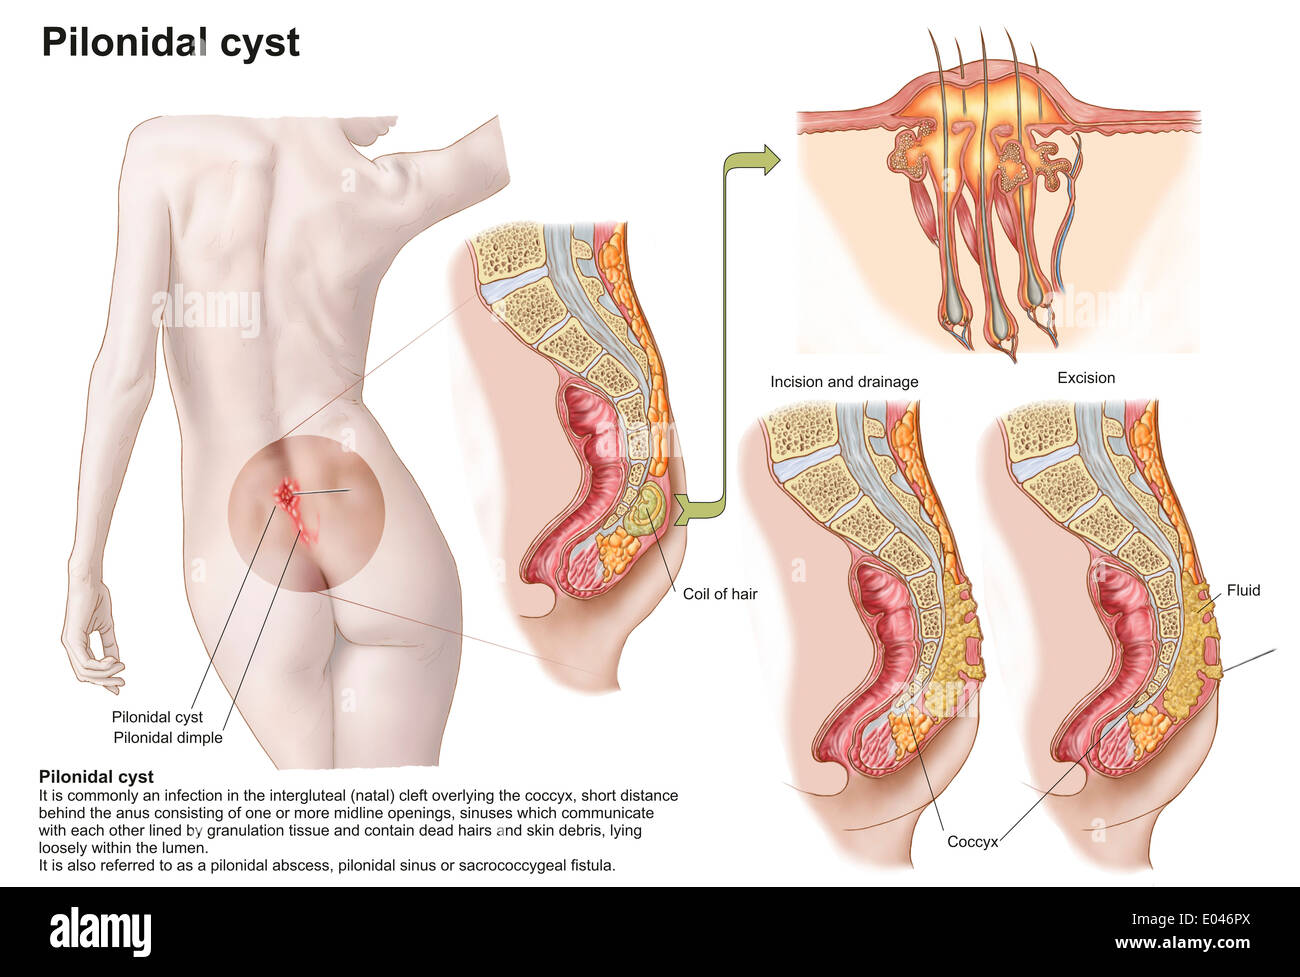 Medical Ilustration Of A Pilonidal Cyst Near The Natal